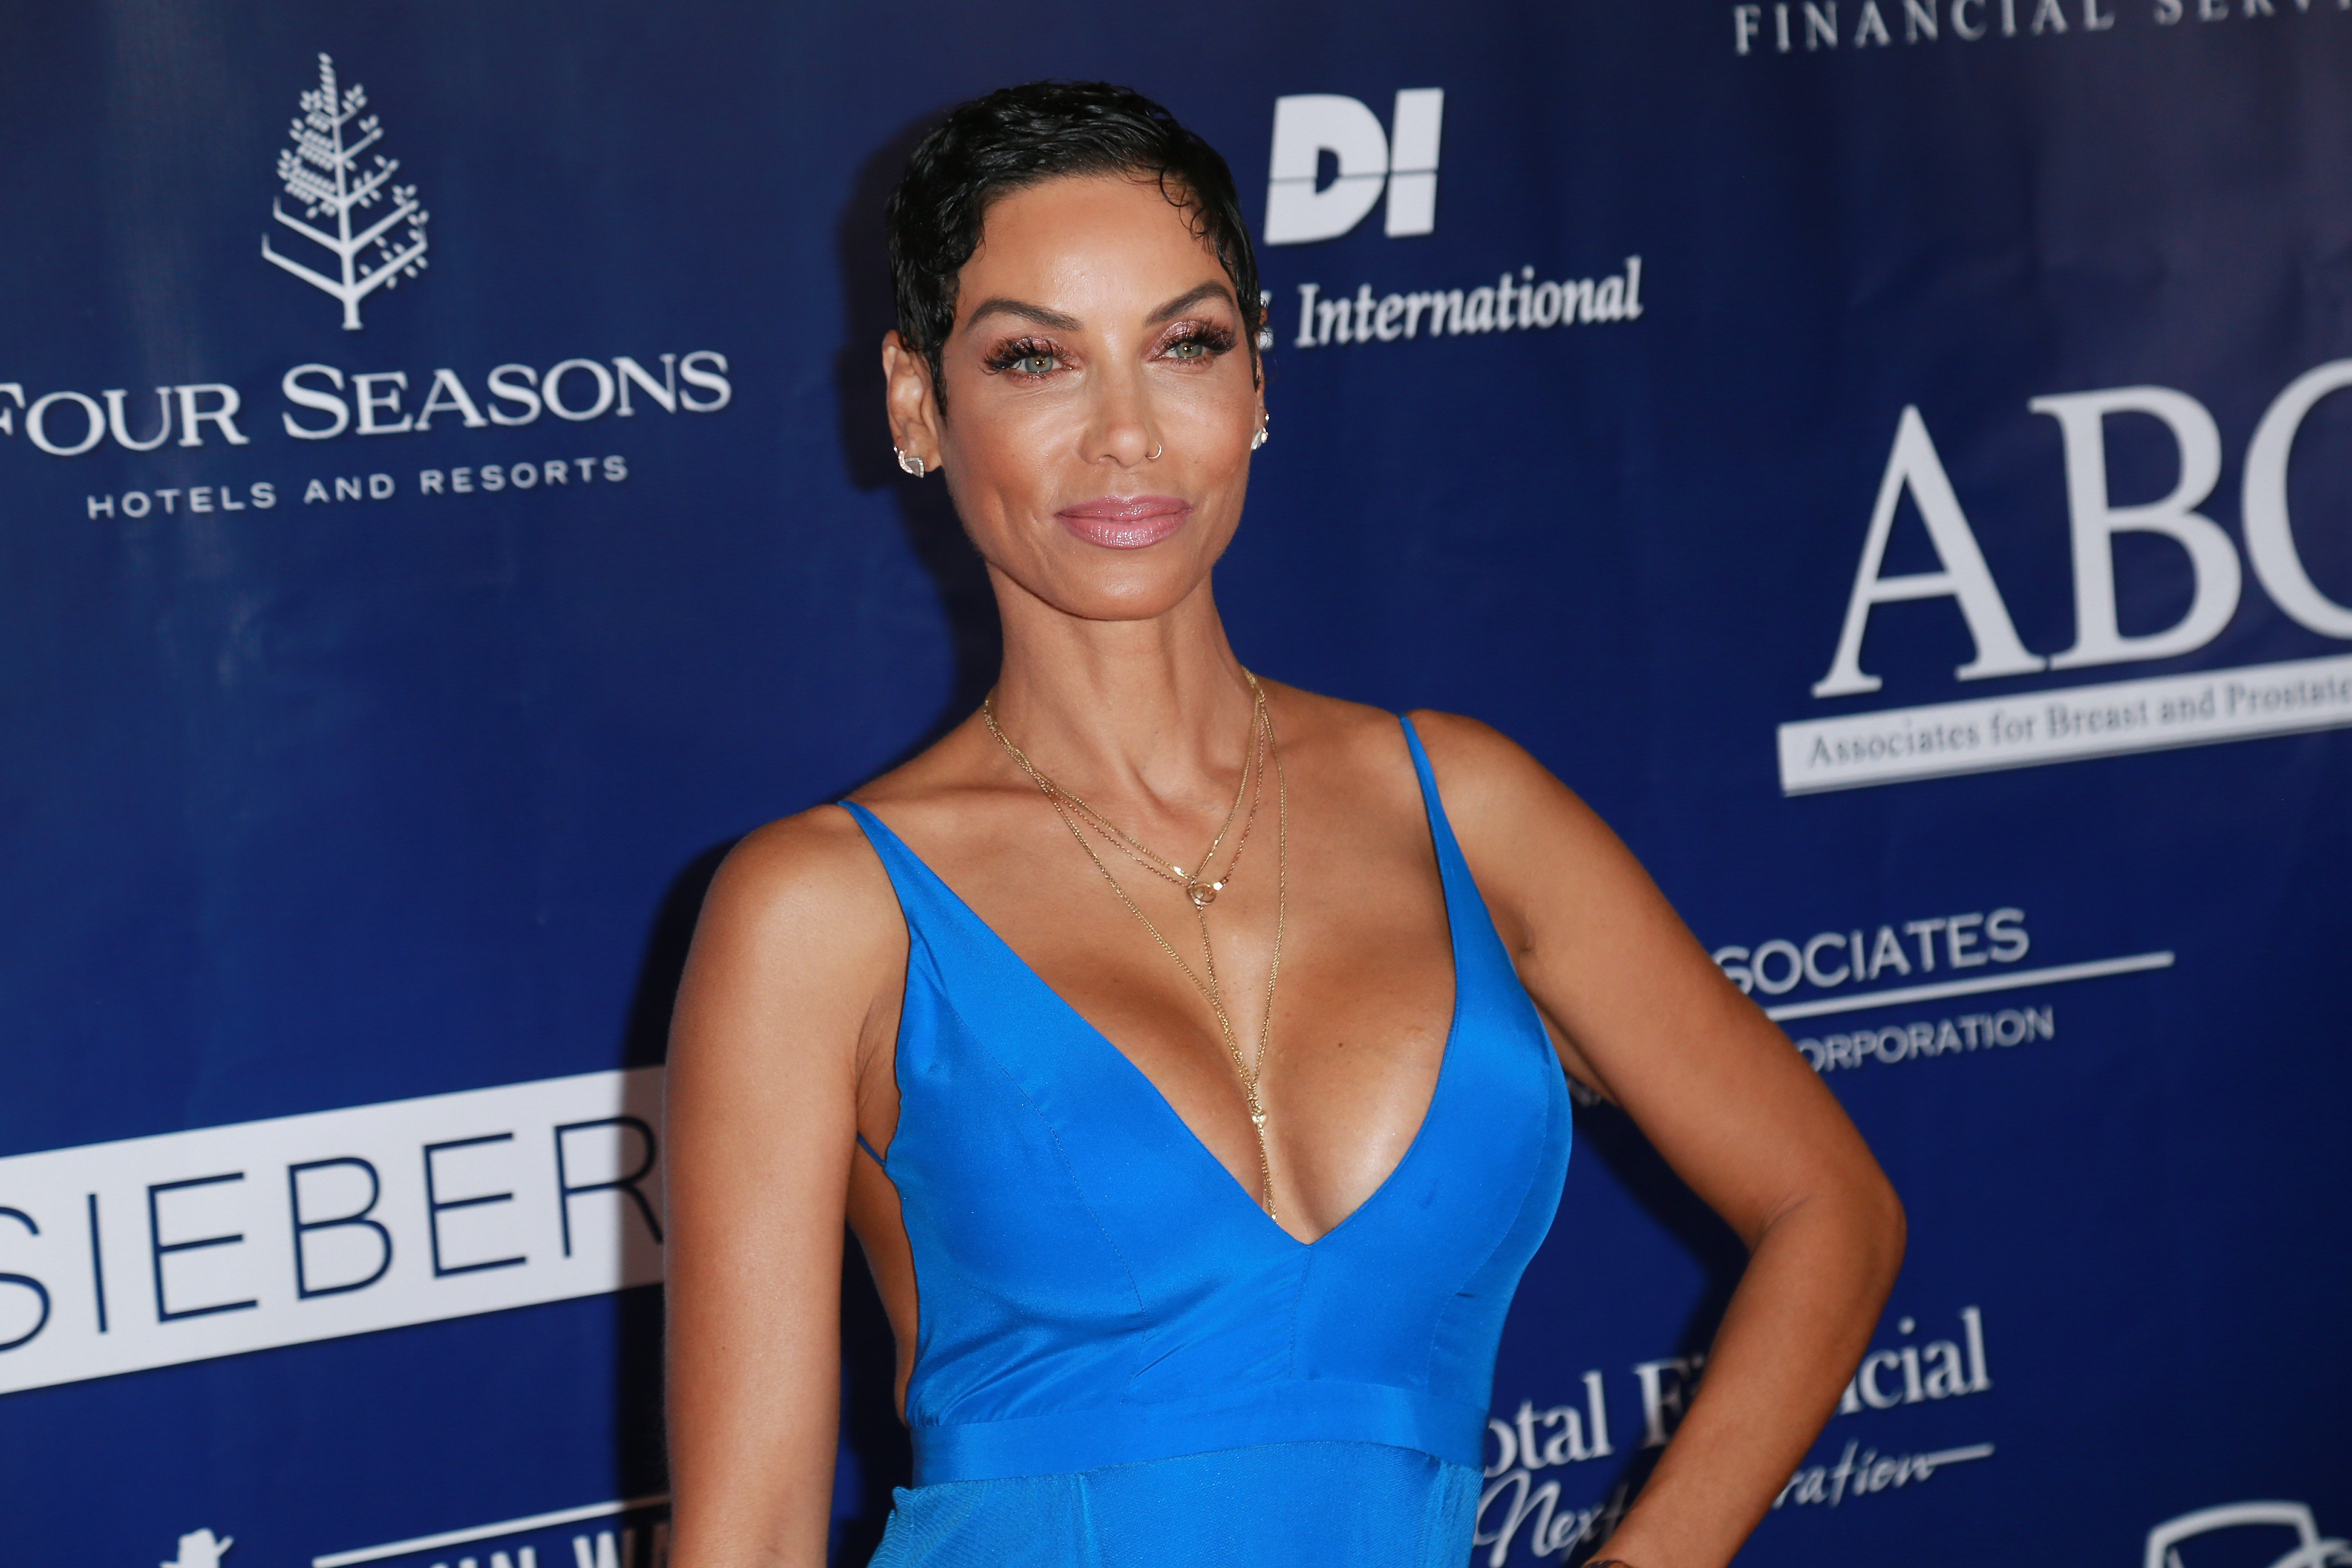 Nicole Mitchell Murphy attends the 28th Annual Talk of the Town Gala on November 18, 2017. | Source: Getty Images